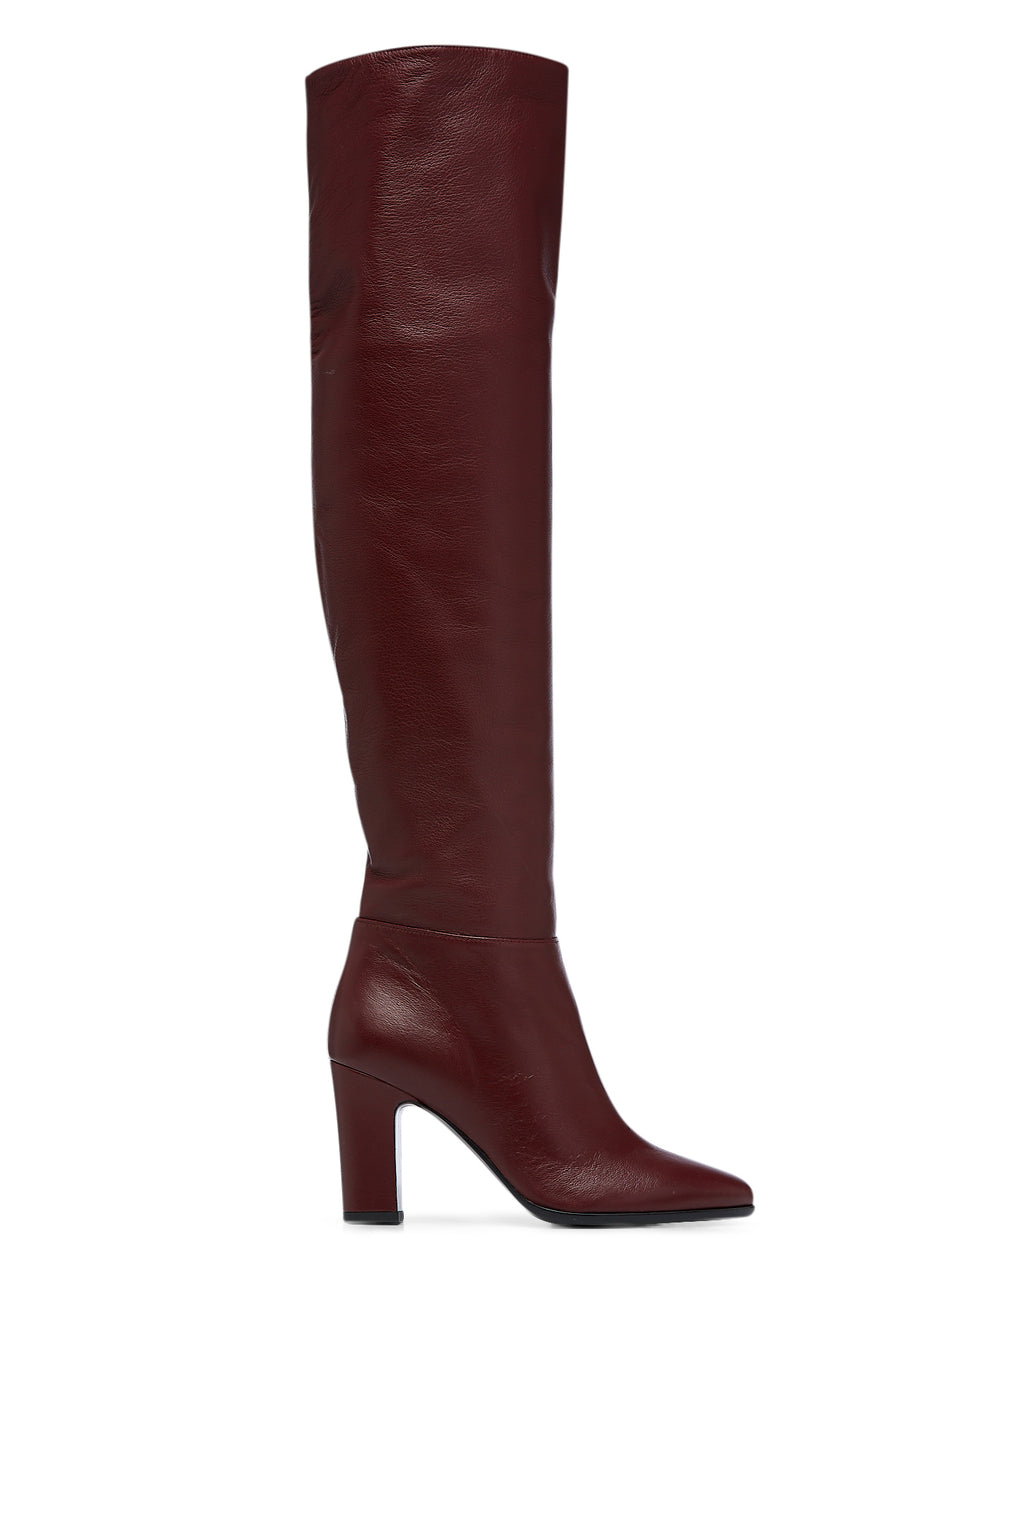 LEATHER KNEE HIGH BOOT 8.5